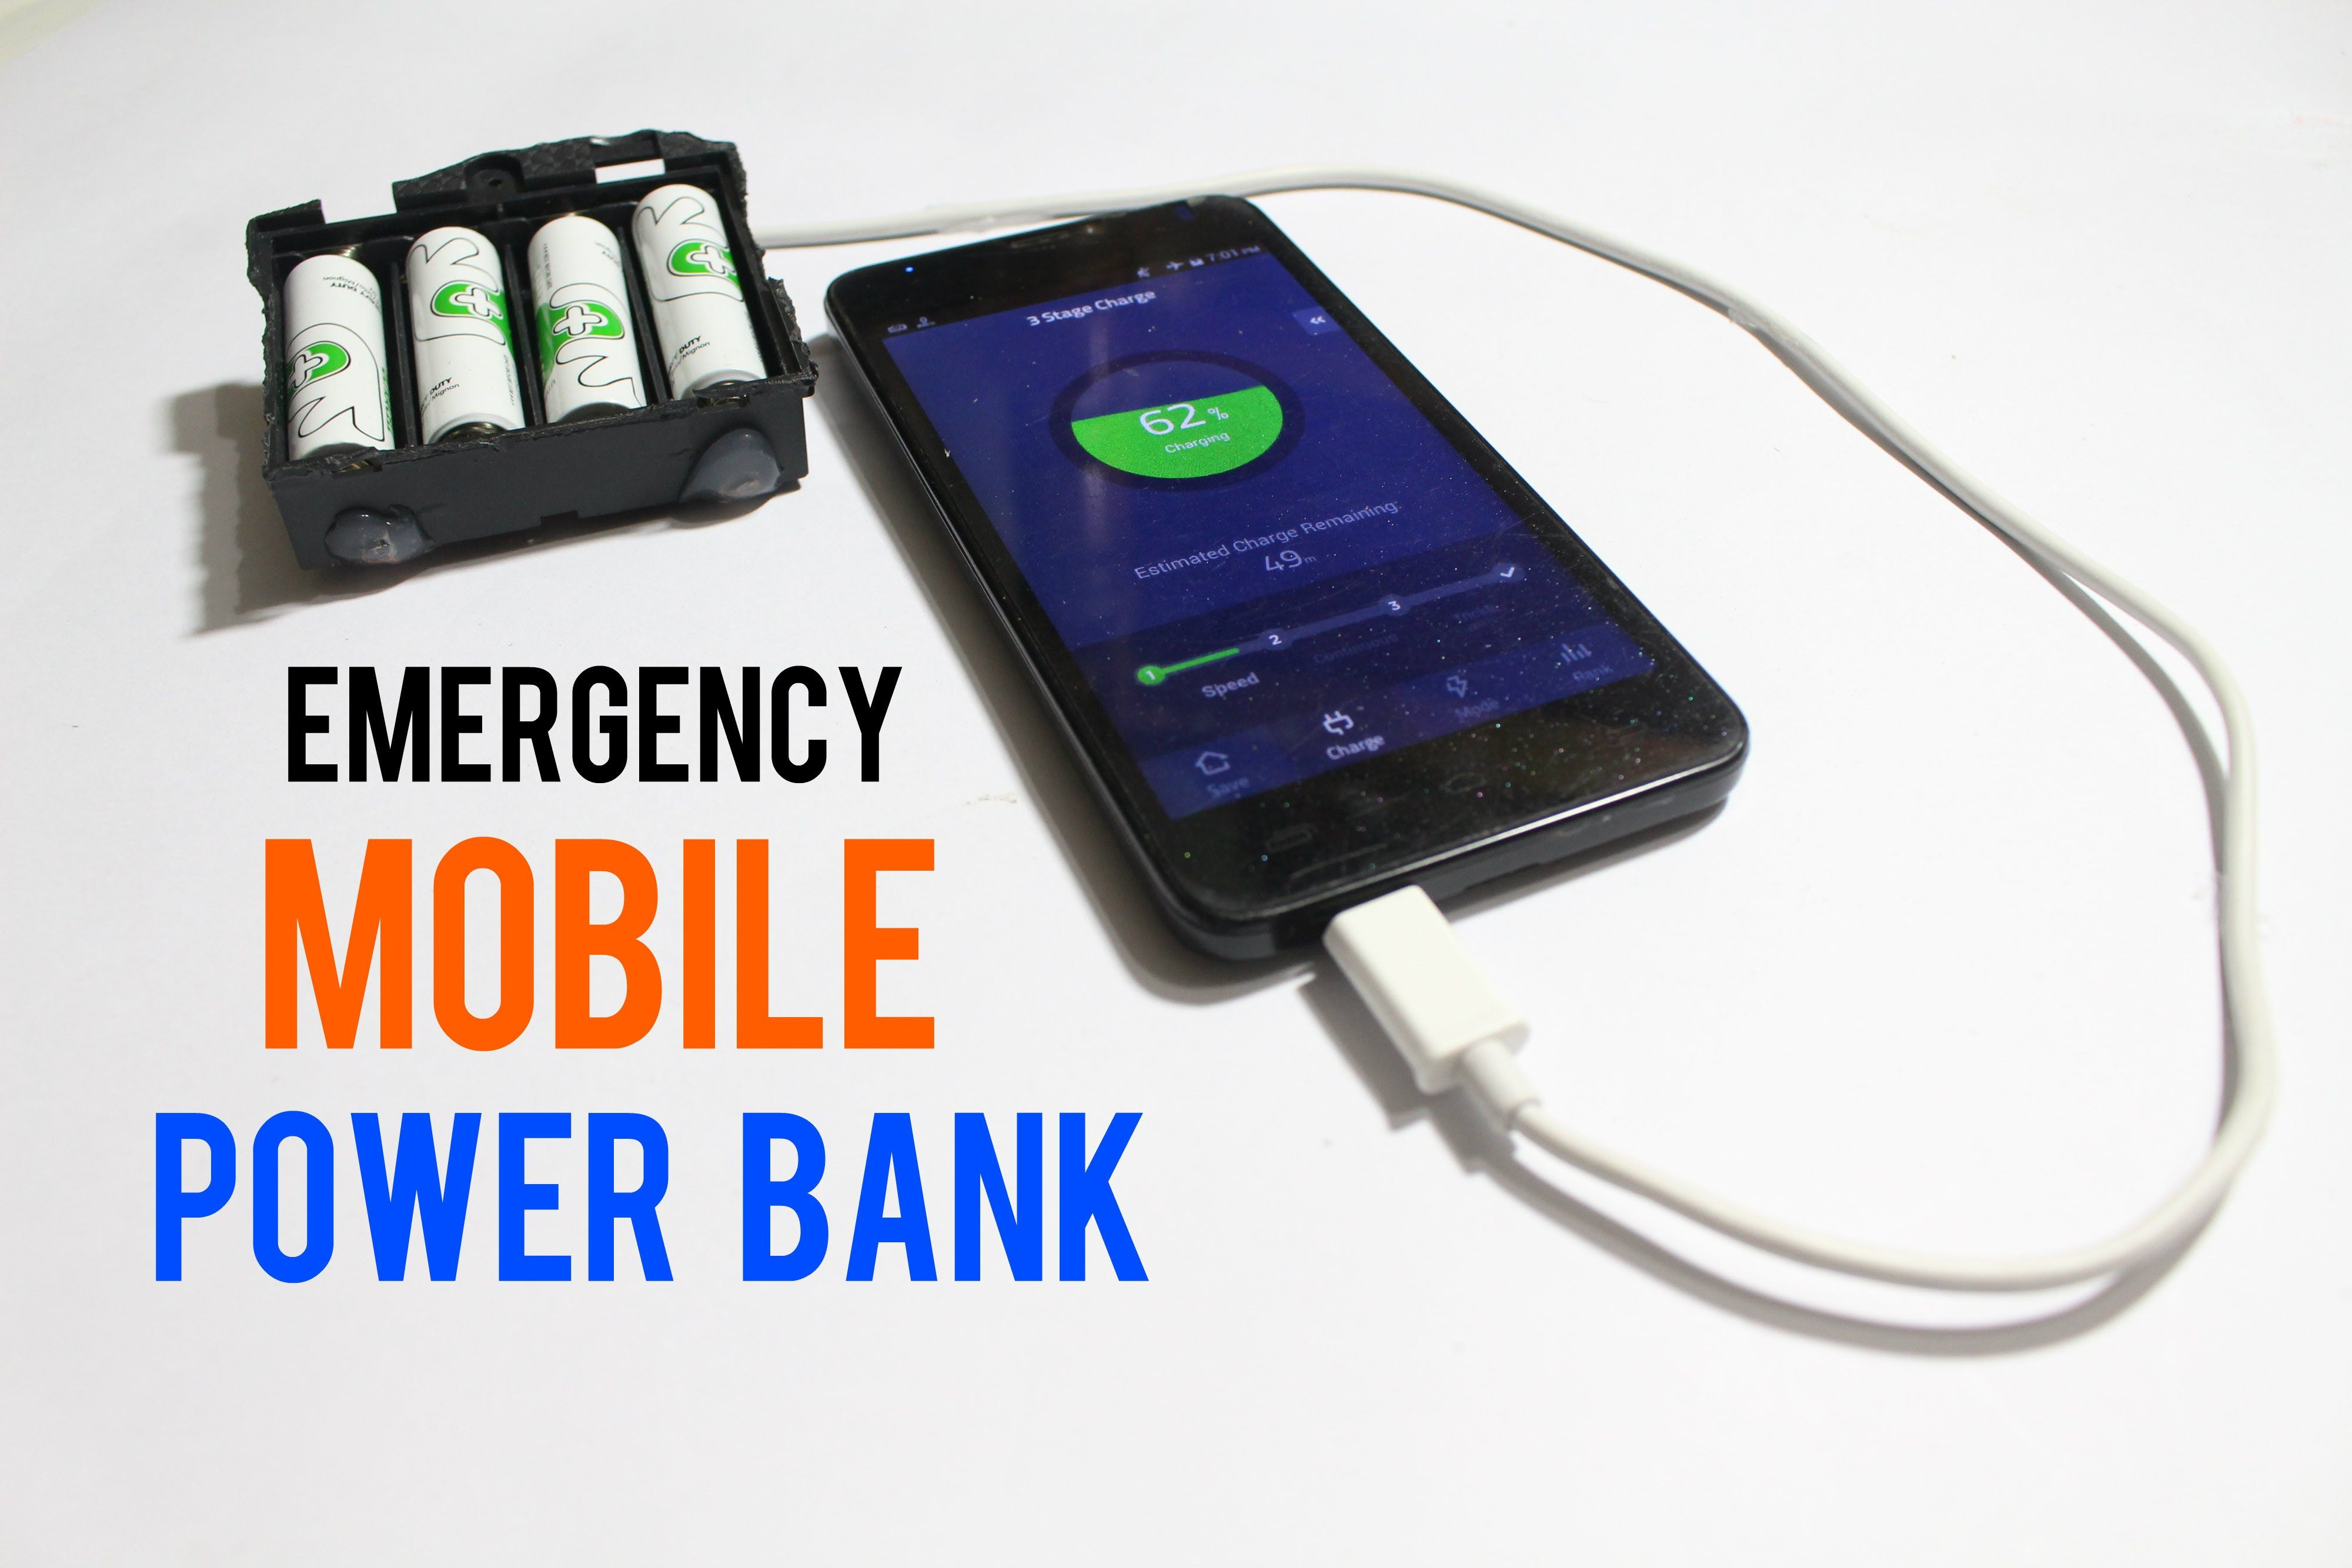 How To Make An Emergency Mobile Phone Charger Using Aa Batteries Phone Charger Phone Mobile Phone